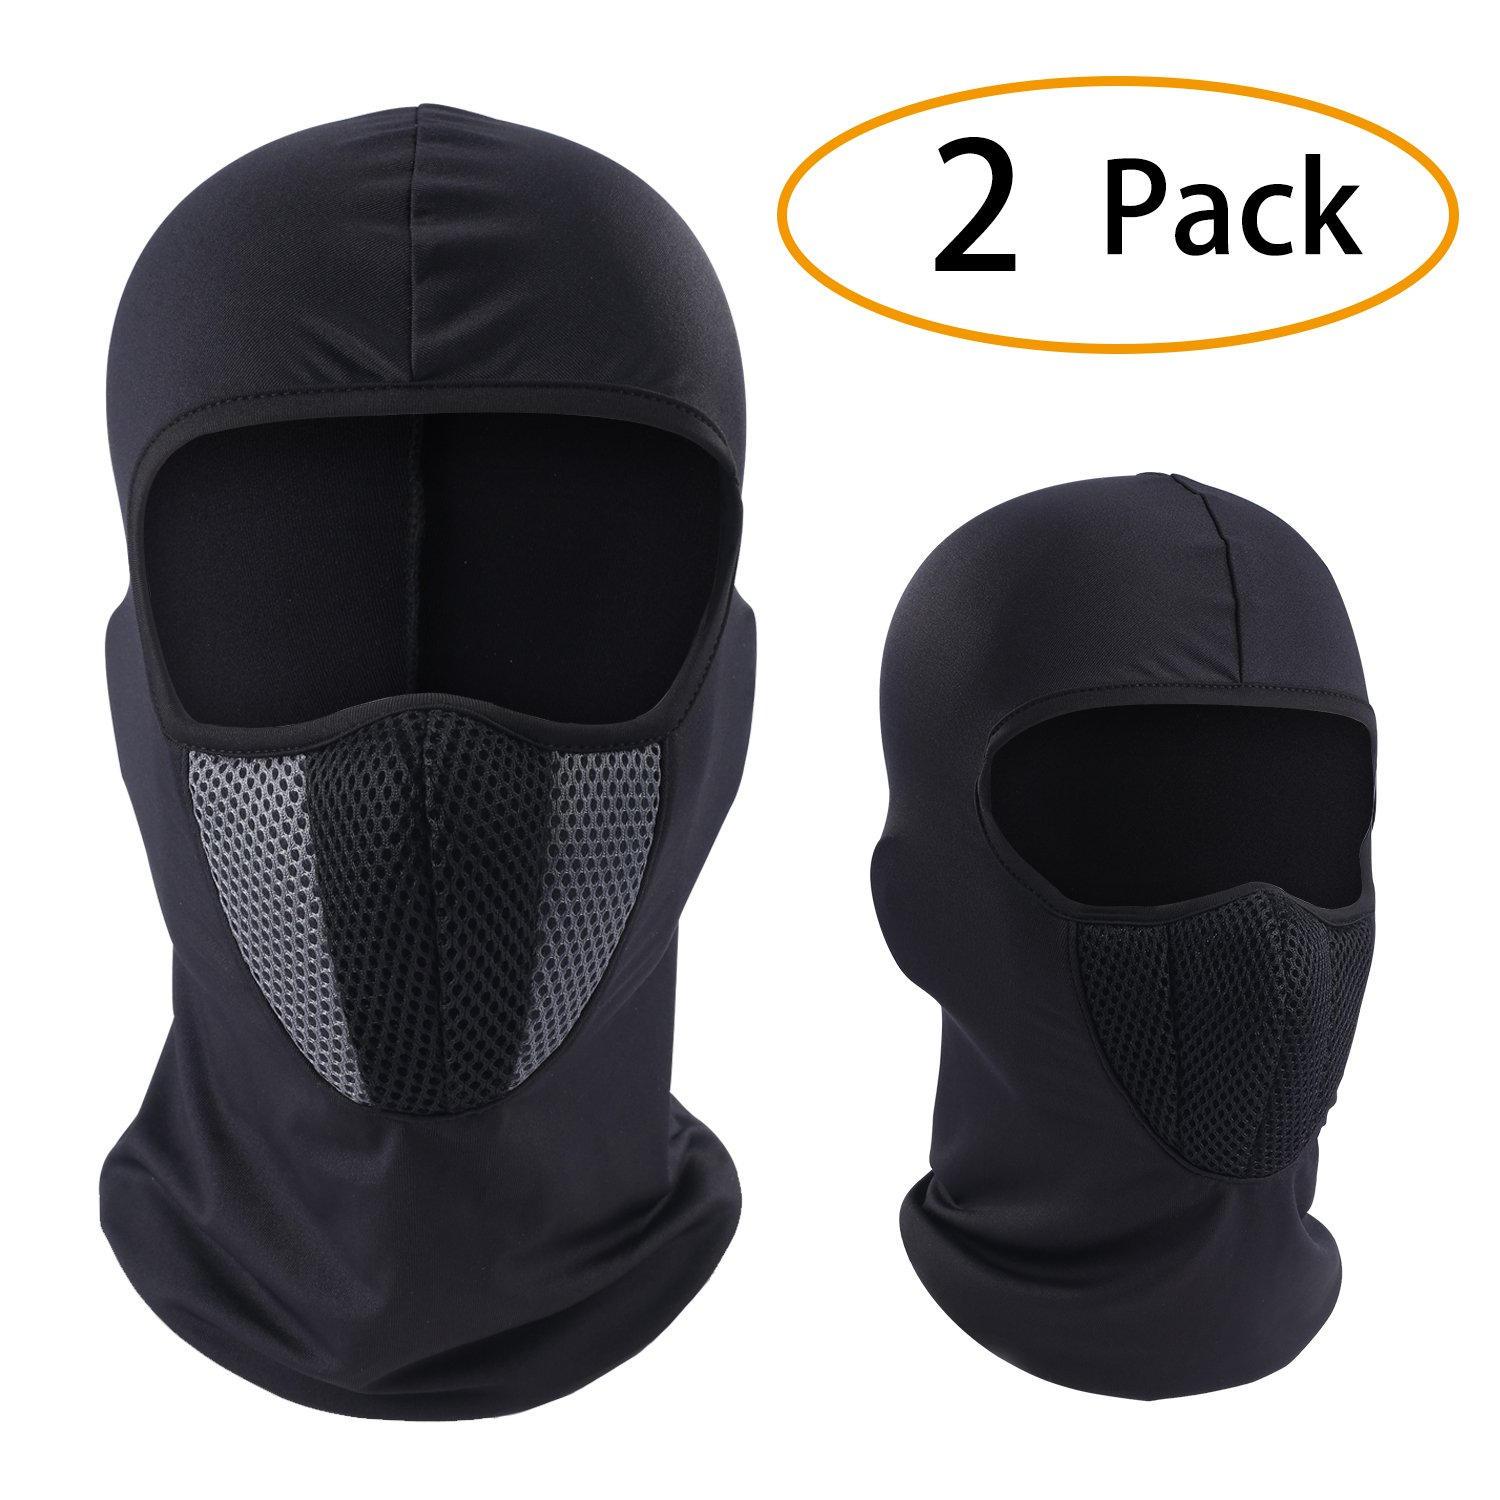 Windproof Balaclava - Dust & Breathable Summer Sun Mask for Cycling, Hiking, Motorcycle